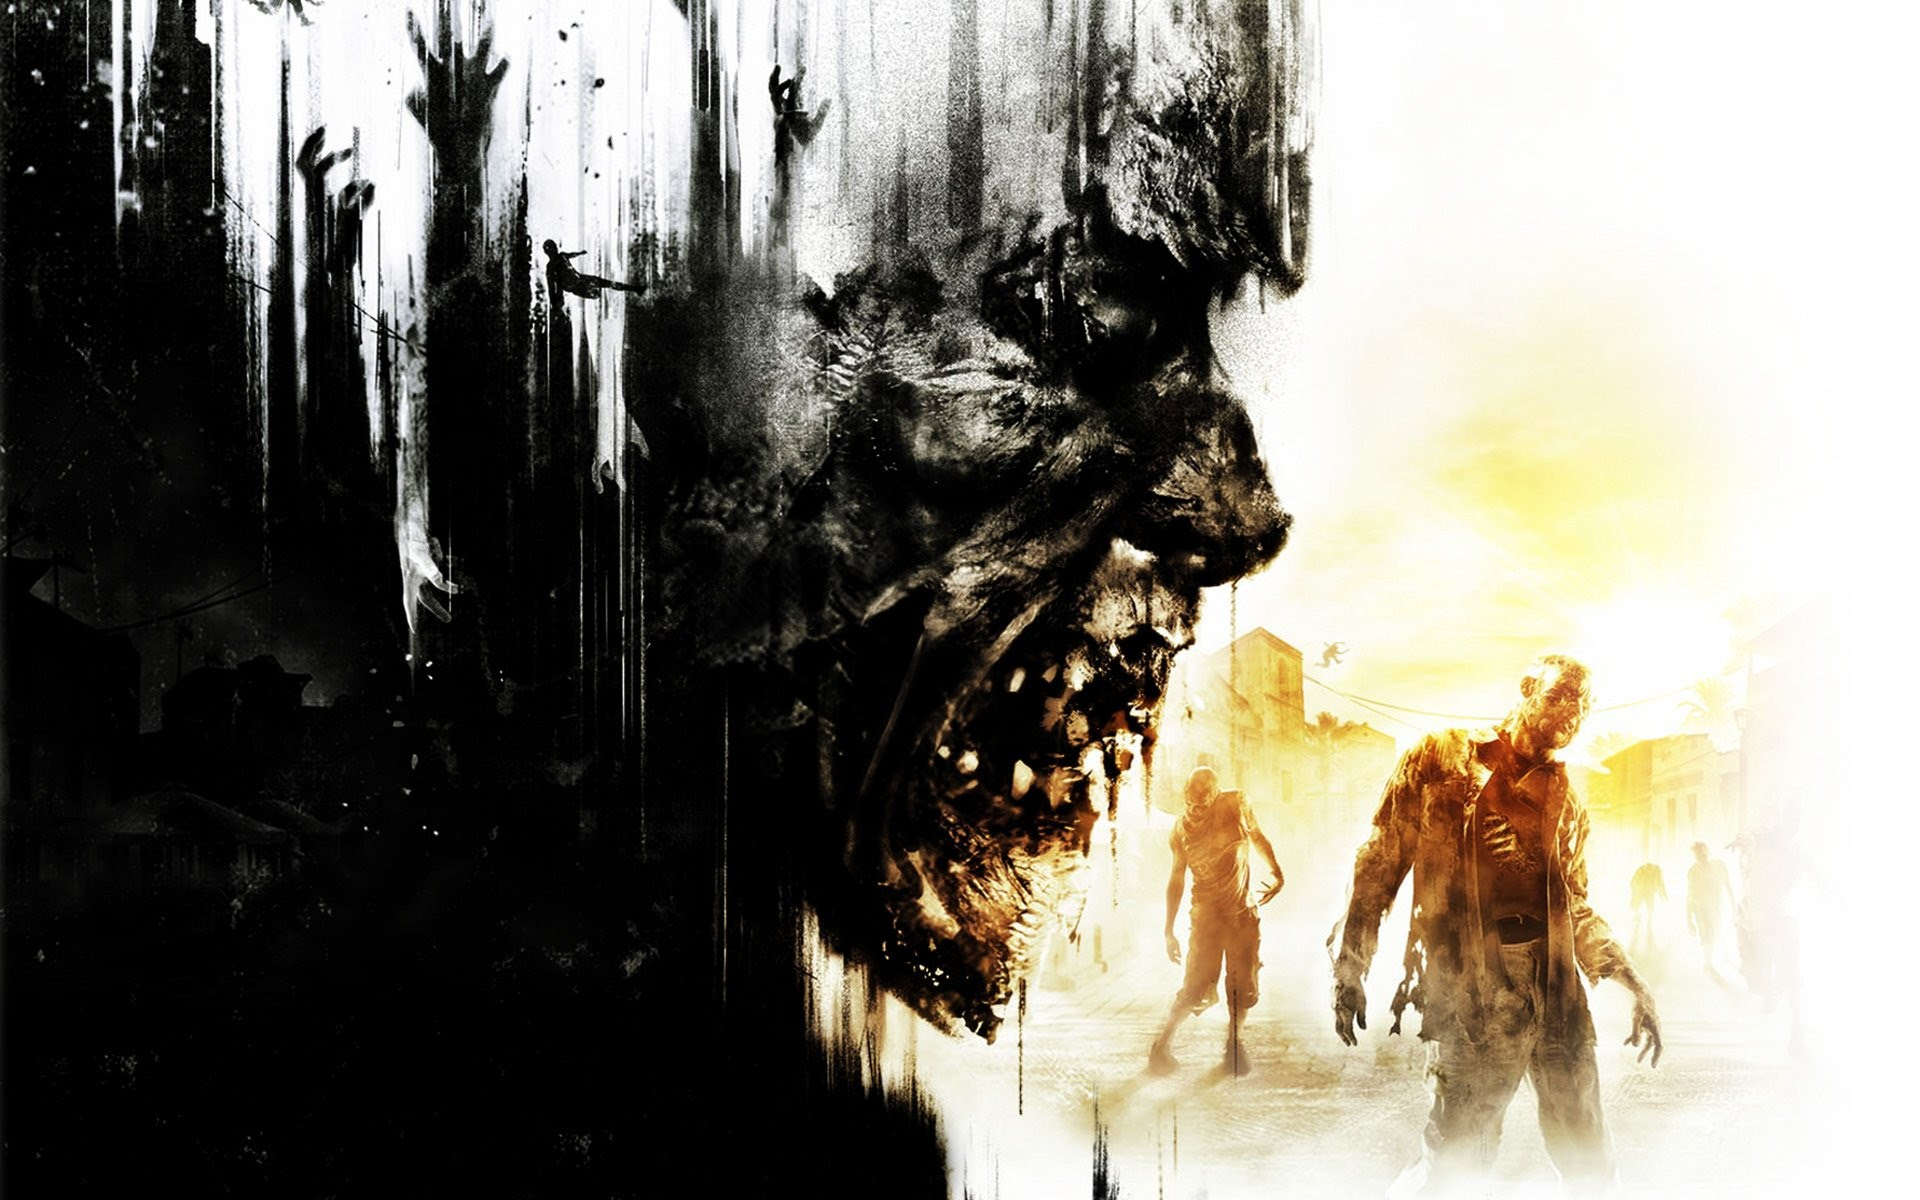 Dying Light Wallpaper Hd 78 Images